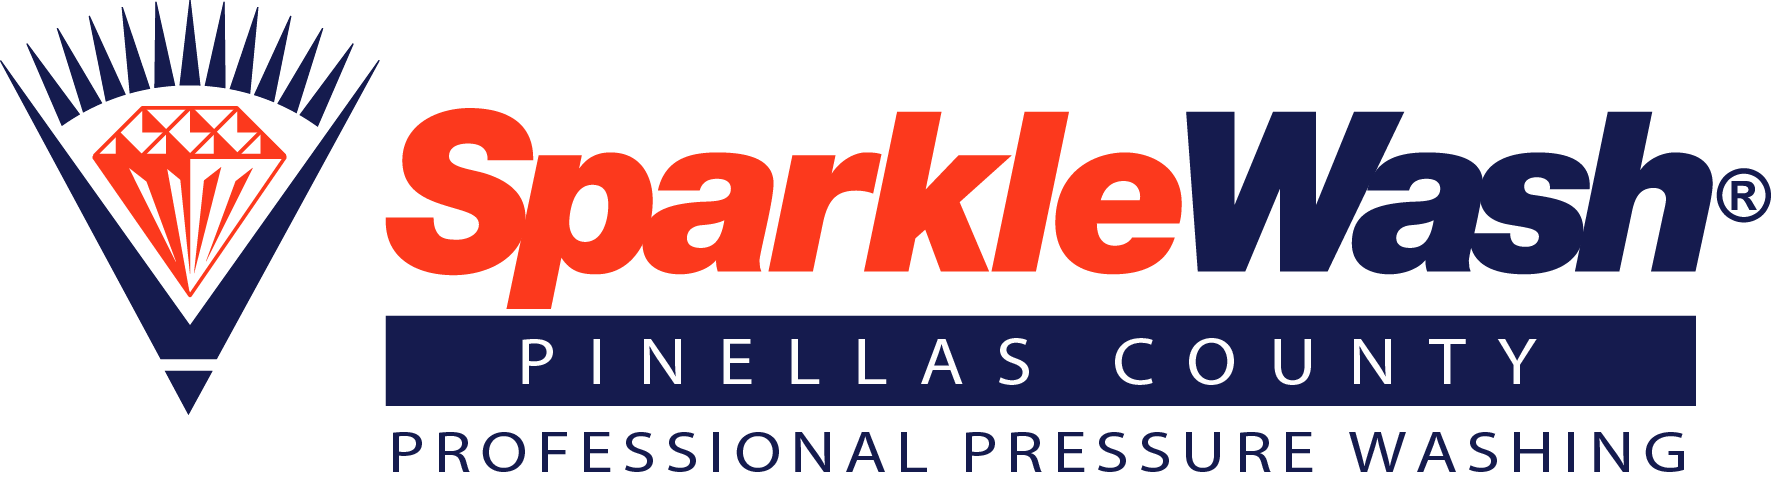 Sparkle Wash Pinellas County